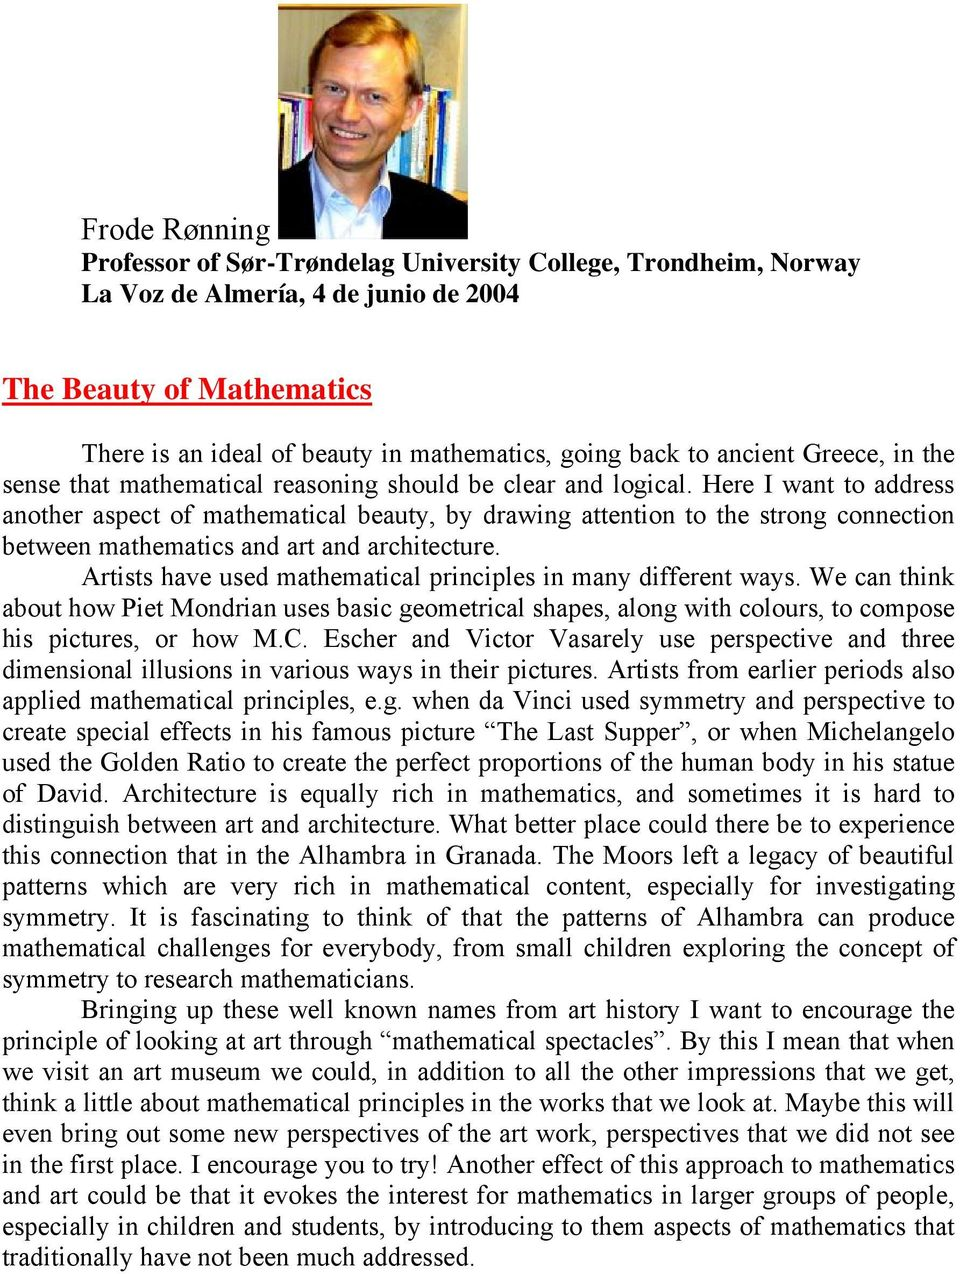 Here I want to address another aspect of mathematical beauty, by drawing attention to the strong connection between mathematics and art and architecture.